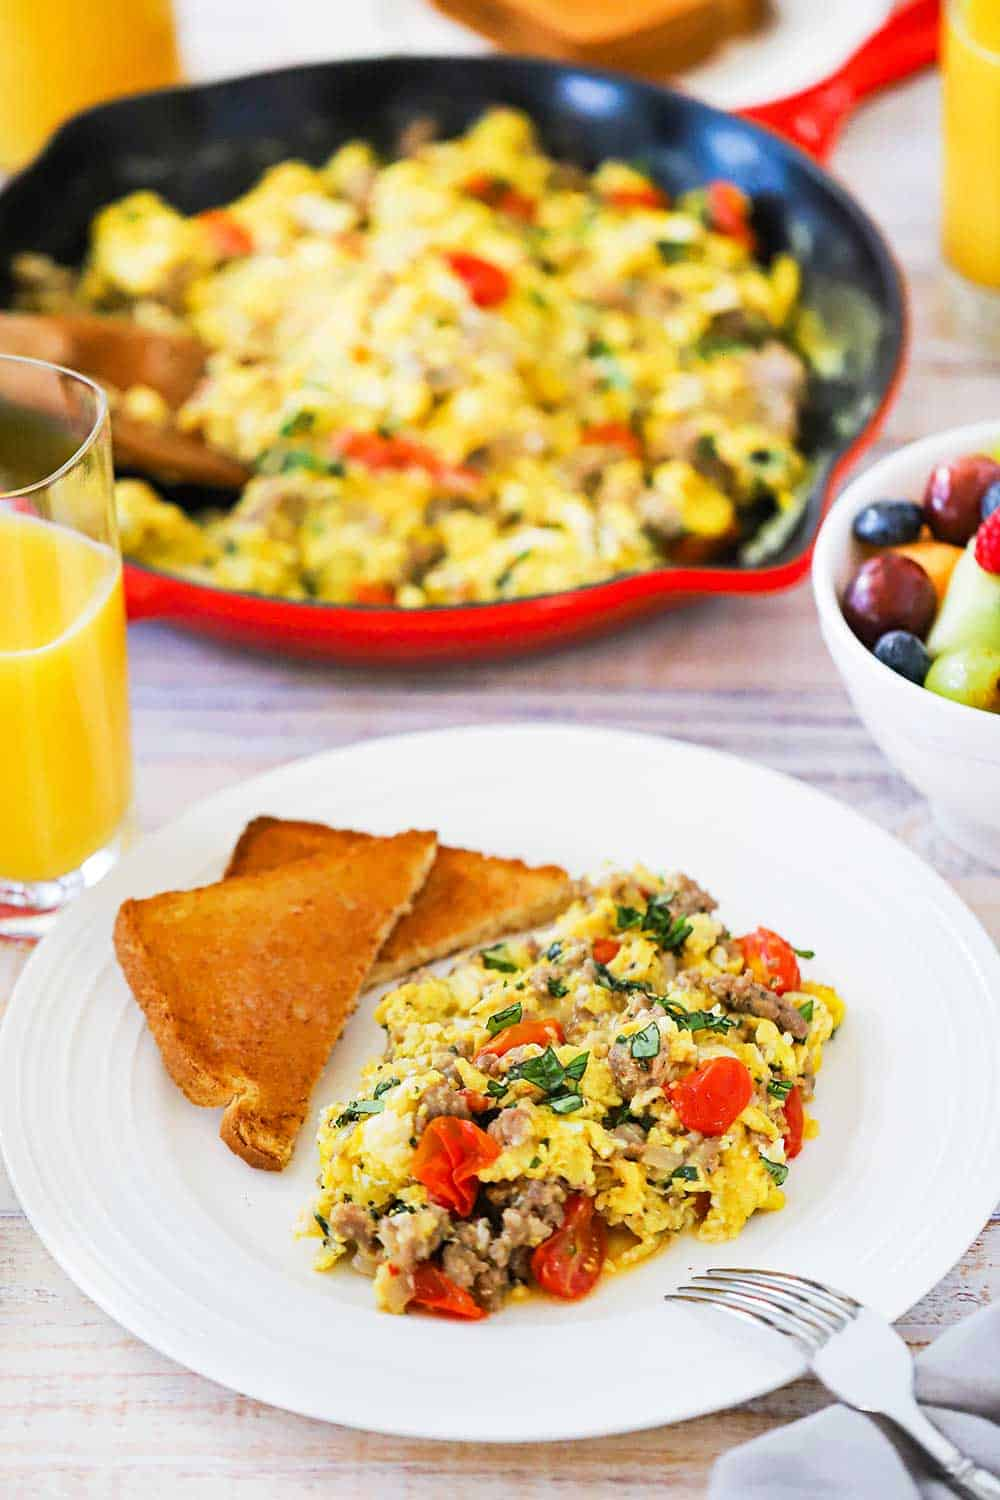 A white dinner plate filled with a large helping of Italian skillet scramble next to a couple pieces of toast cut in half, all next to a large skillet filled with the scrambled dish.